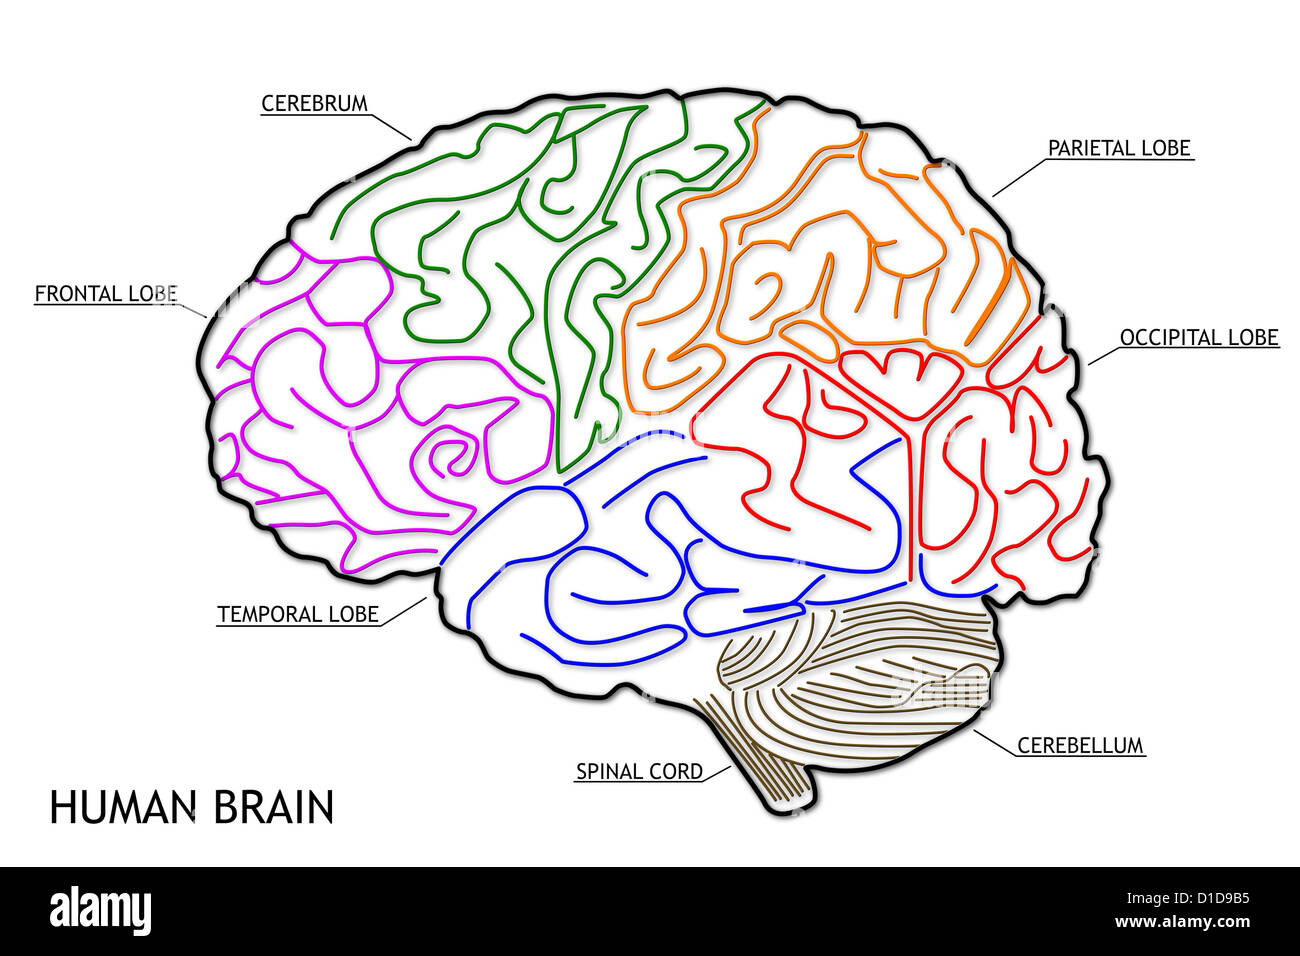 The Human Brain Structure Stock Photo